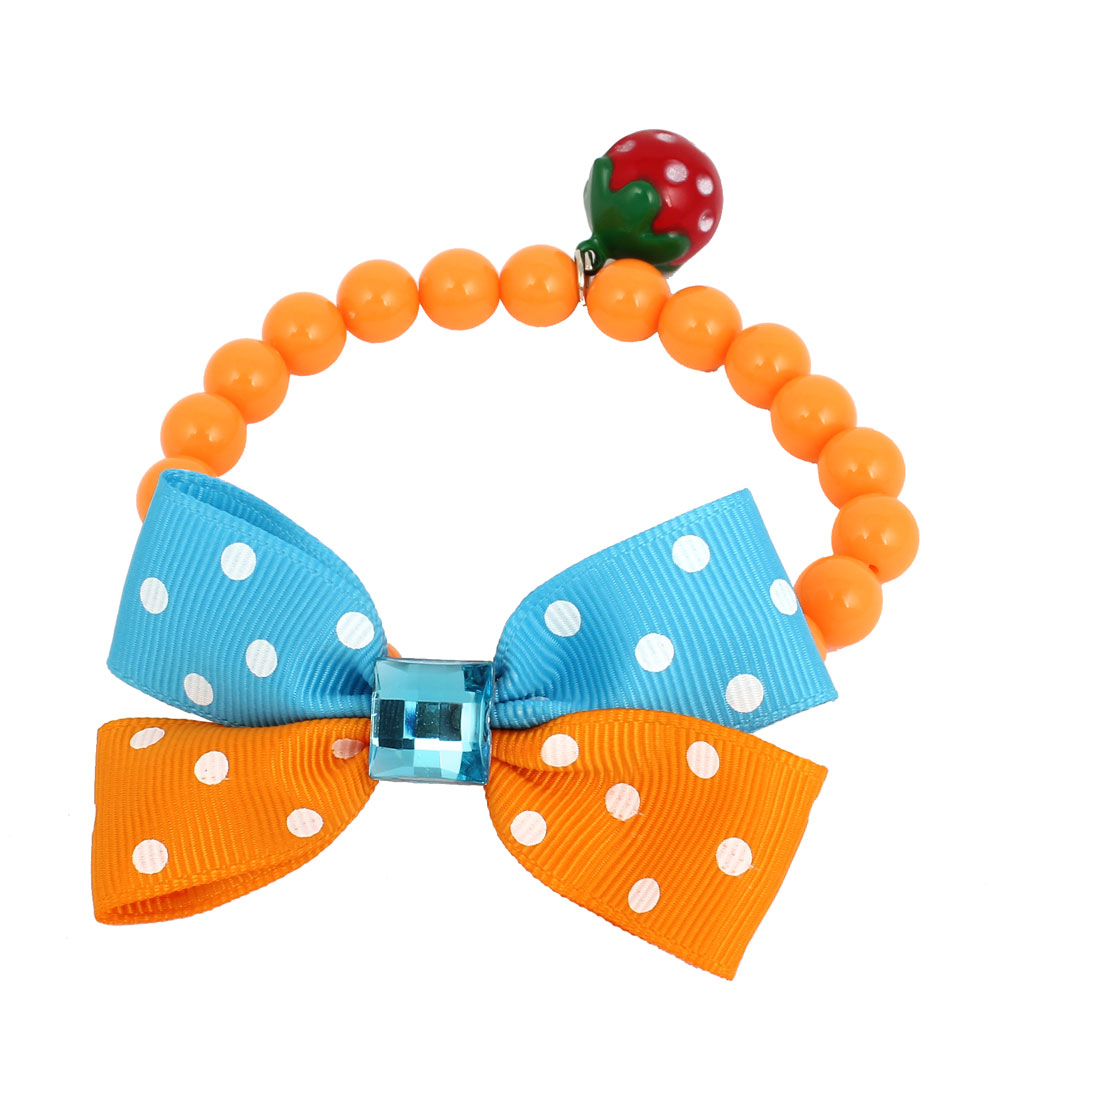 Metal Bell Pendant Bowtie Accent Pet Dog Plastic Round Beads Collar Necklace Orange Blue XS